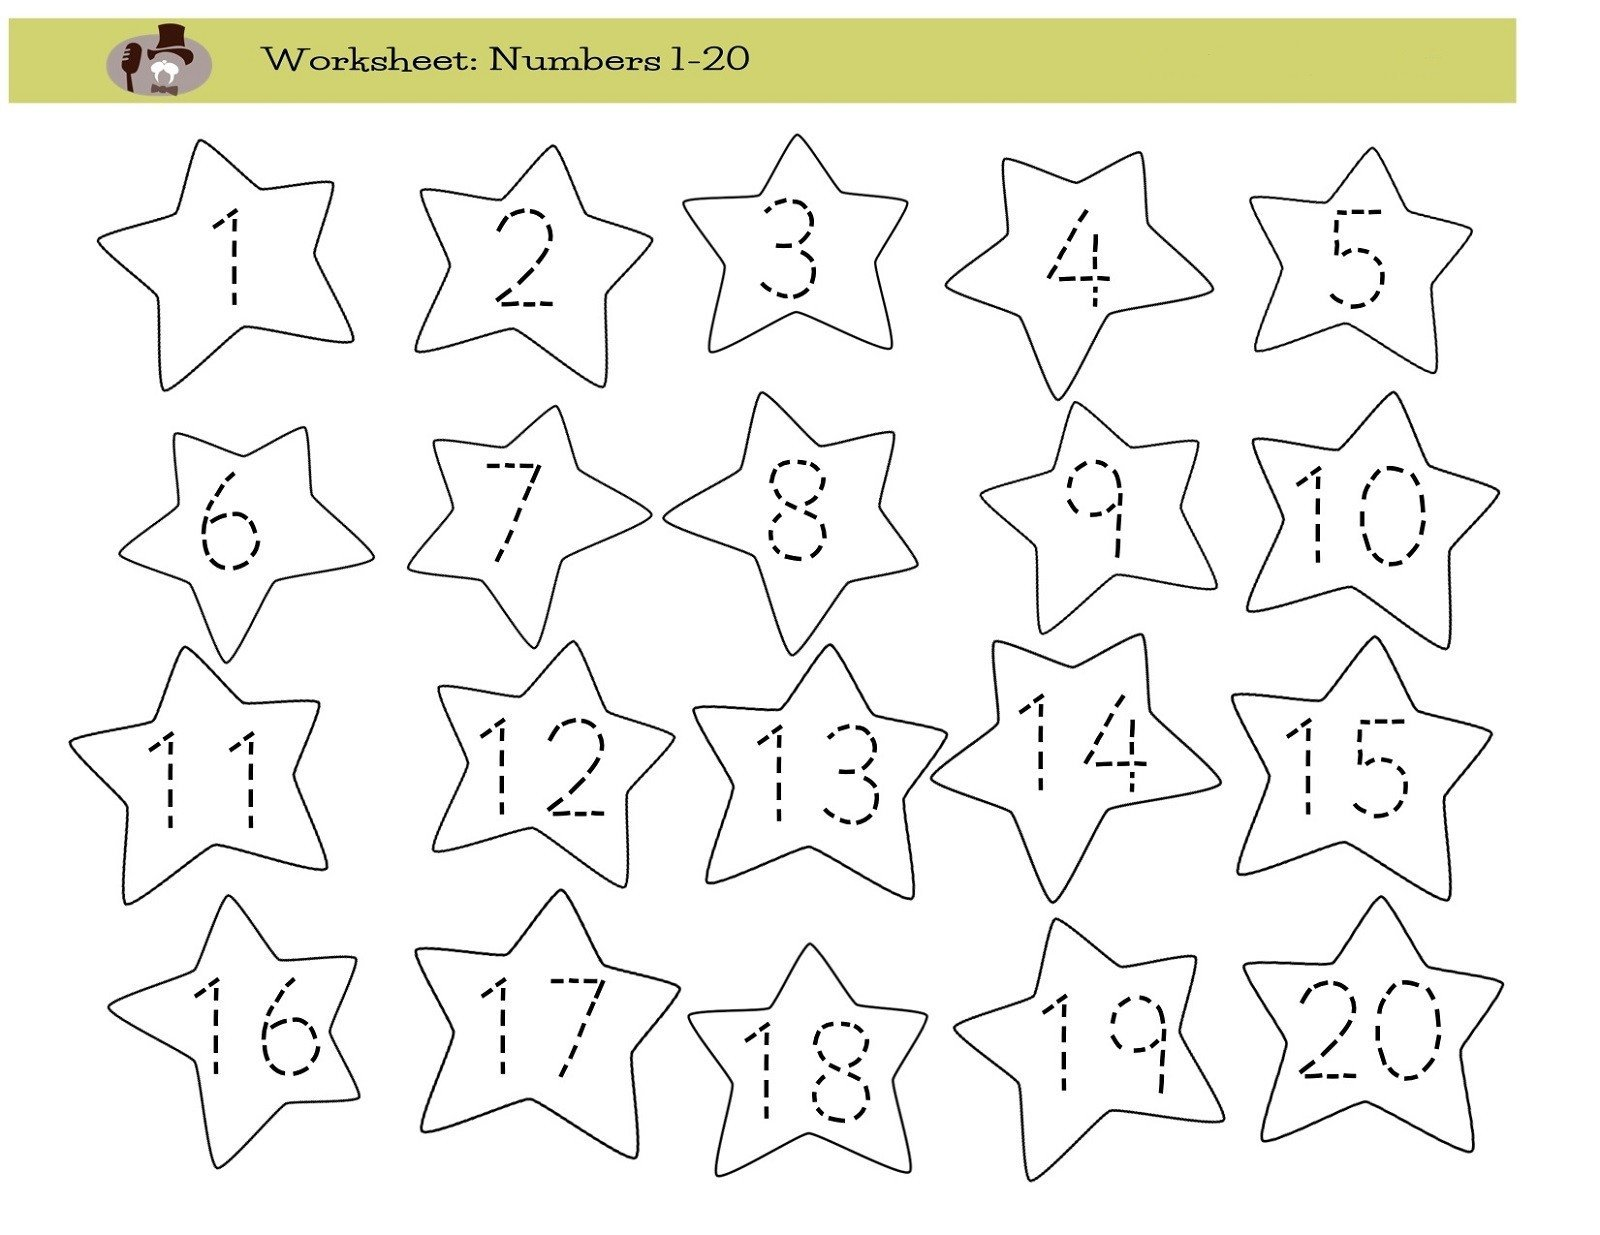 Tracing Number Worksheets 1 20 Worksheets Trace Numbers Worksheet Printable Worksheets